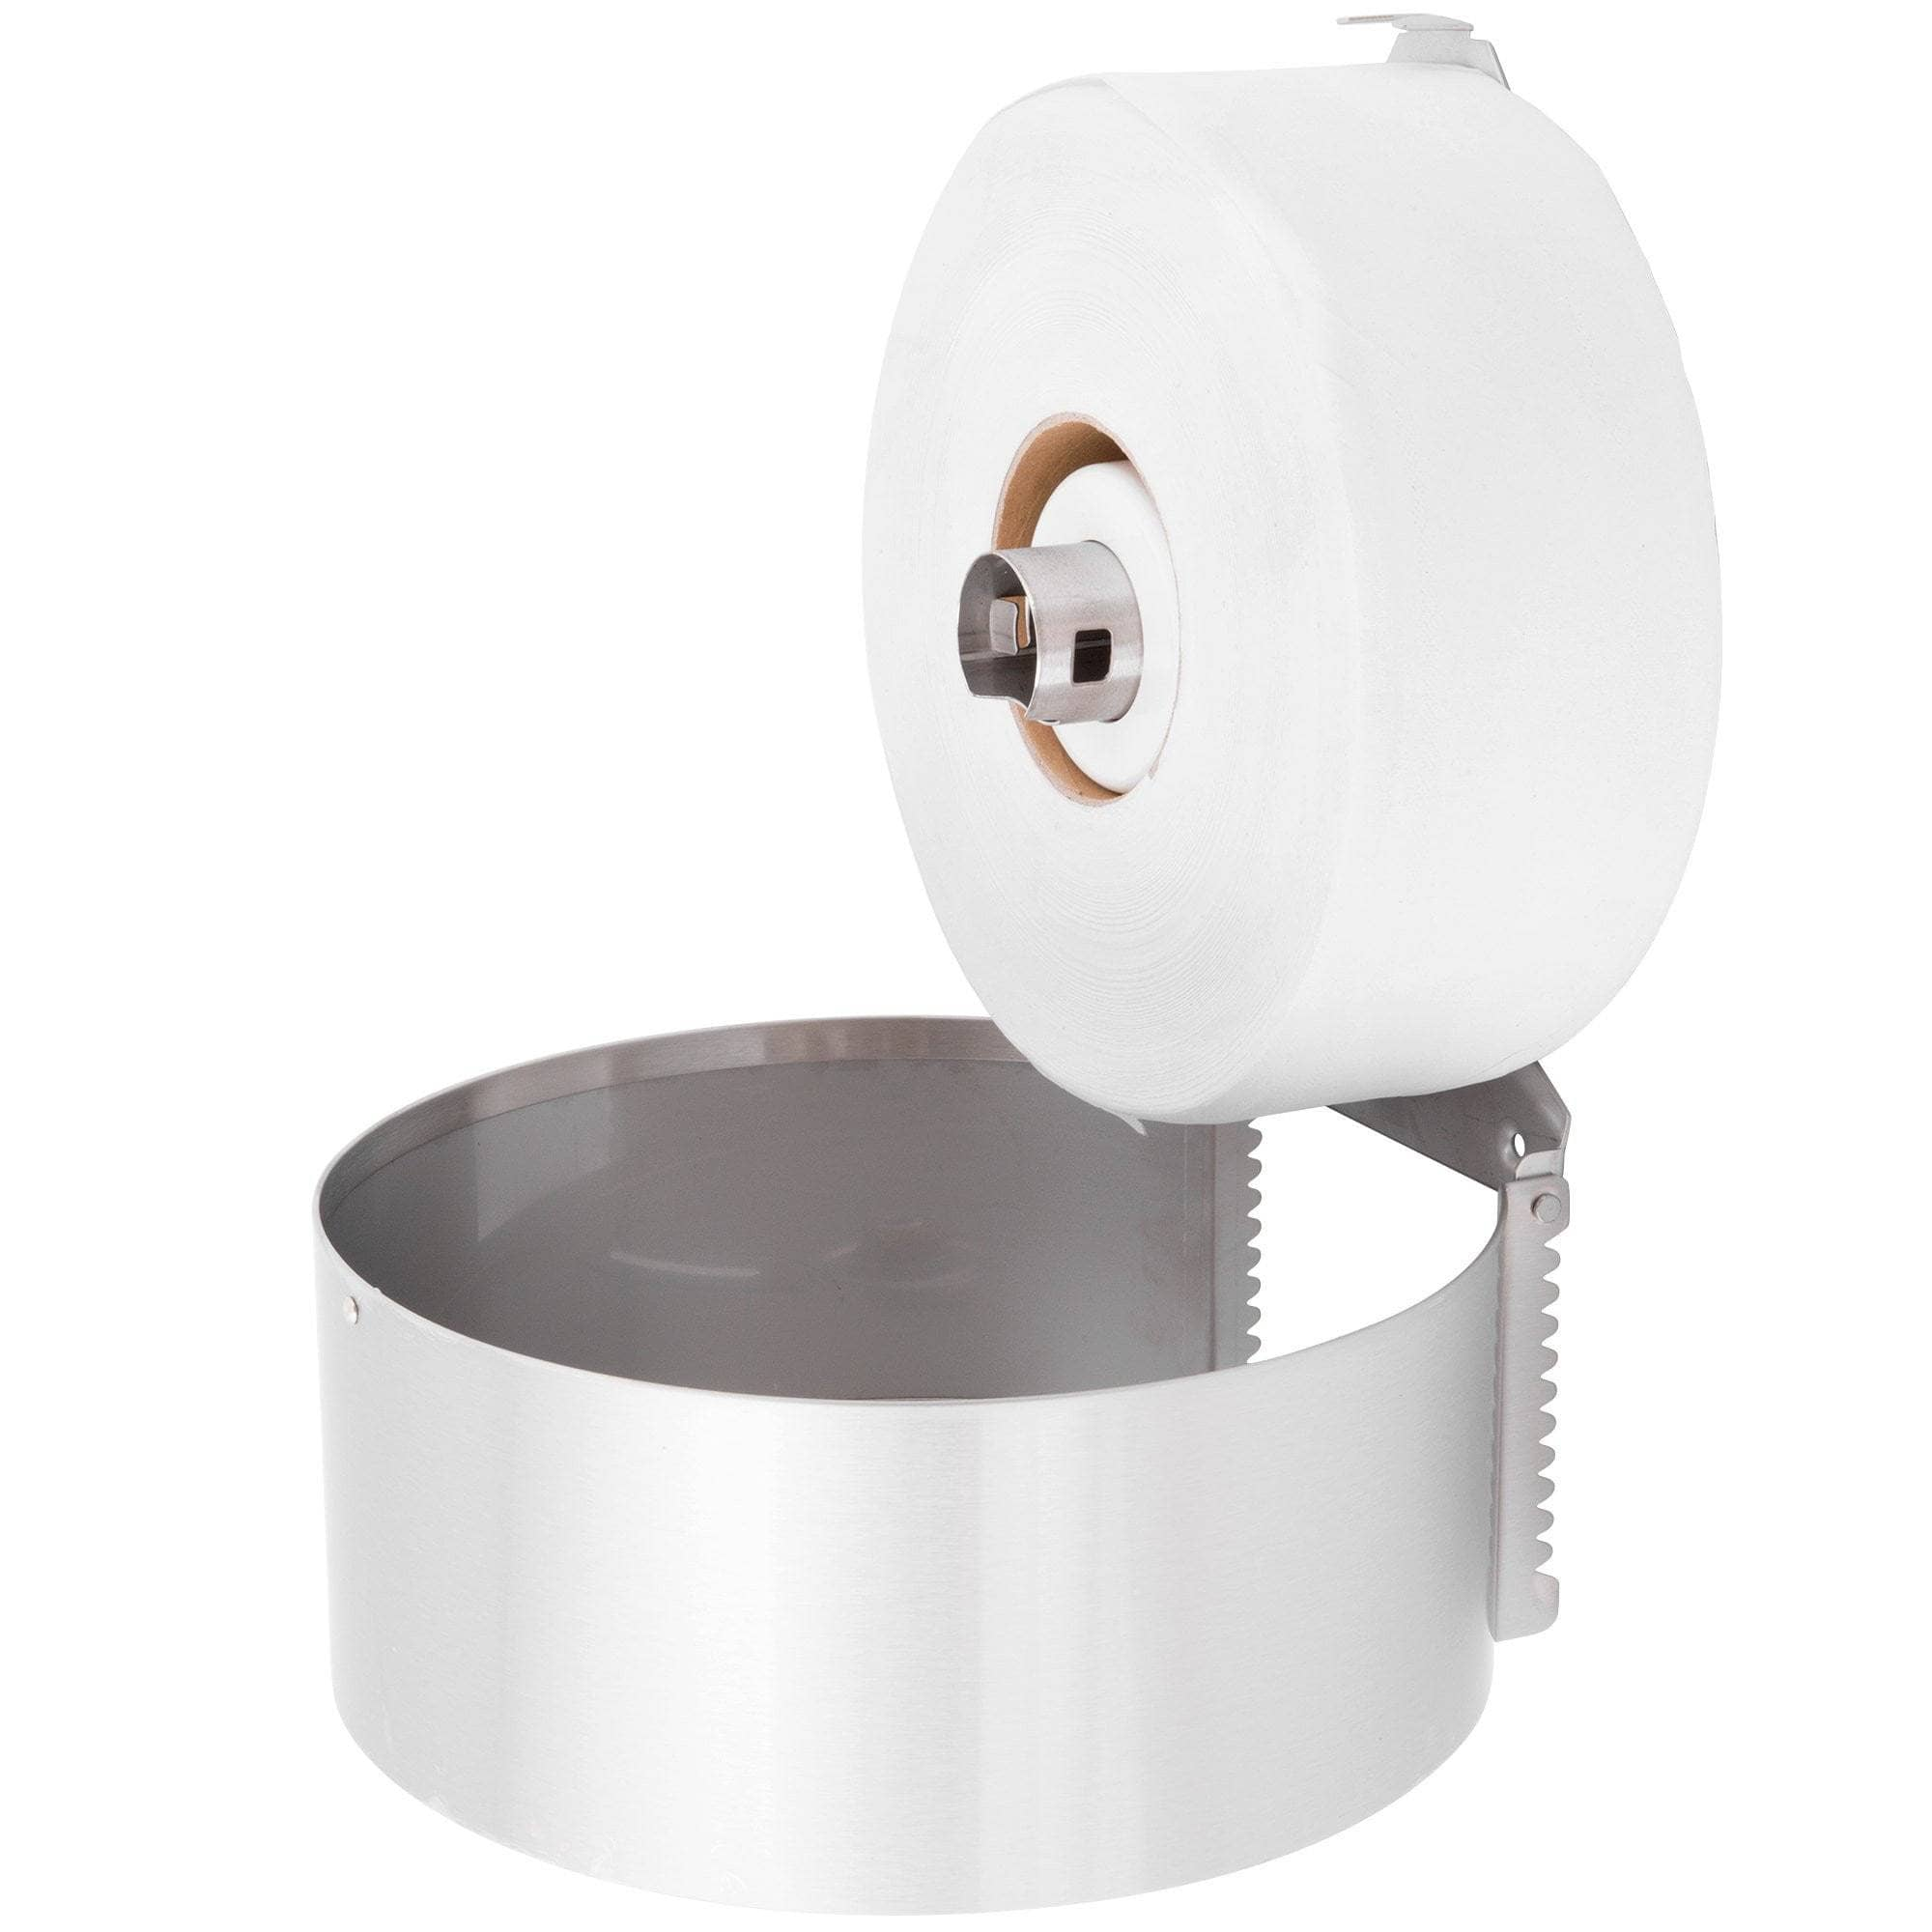 Bobrick B-2890 Commercial Toilet Paper Dispenser, Surface-Mounted, Stainless Steel w/ Satin Finish - TotalRestroom.com